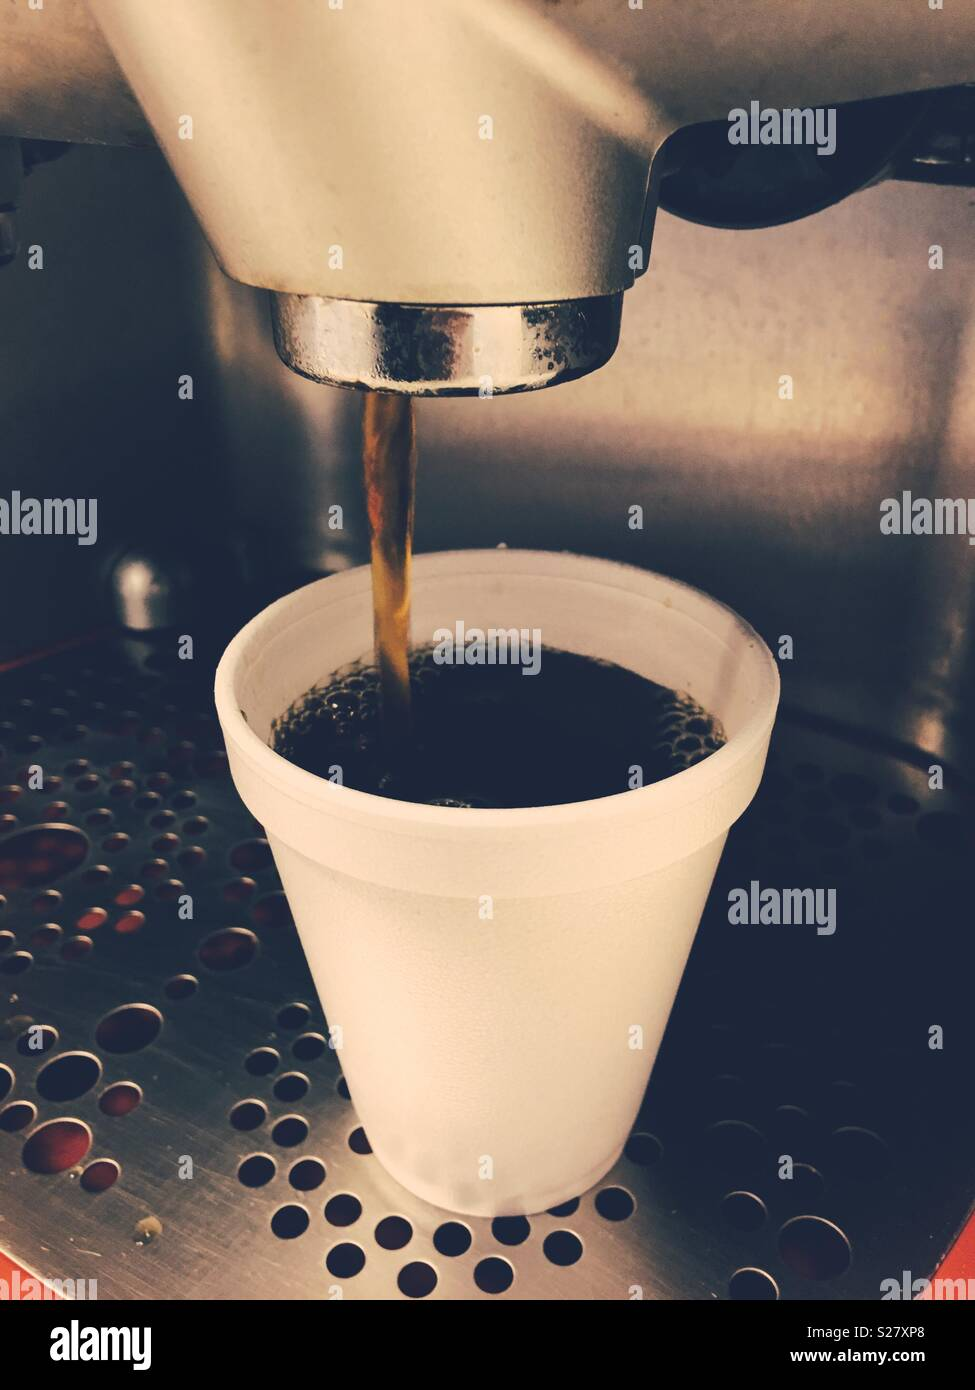 Coffee maker pouring a cup of coffee. - Stock Image